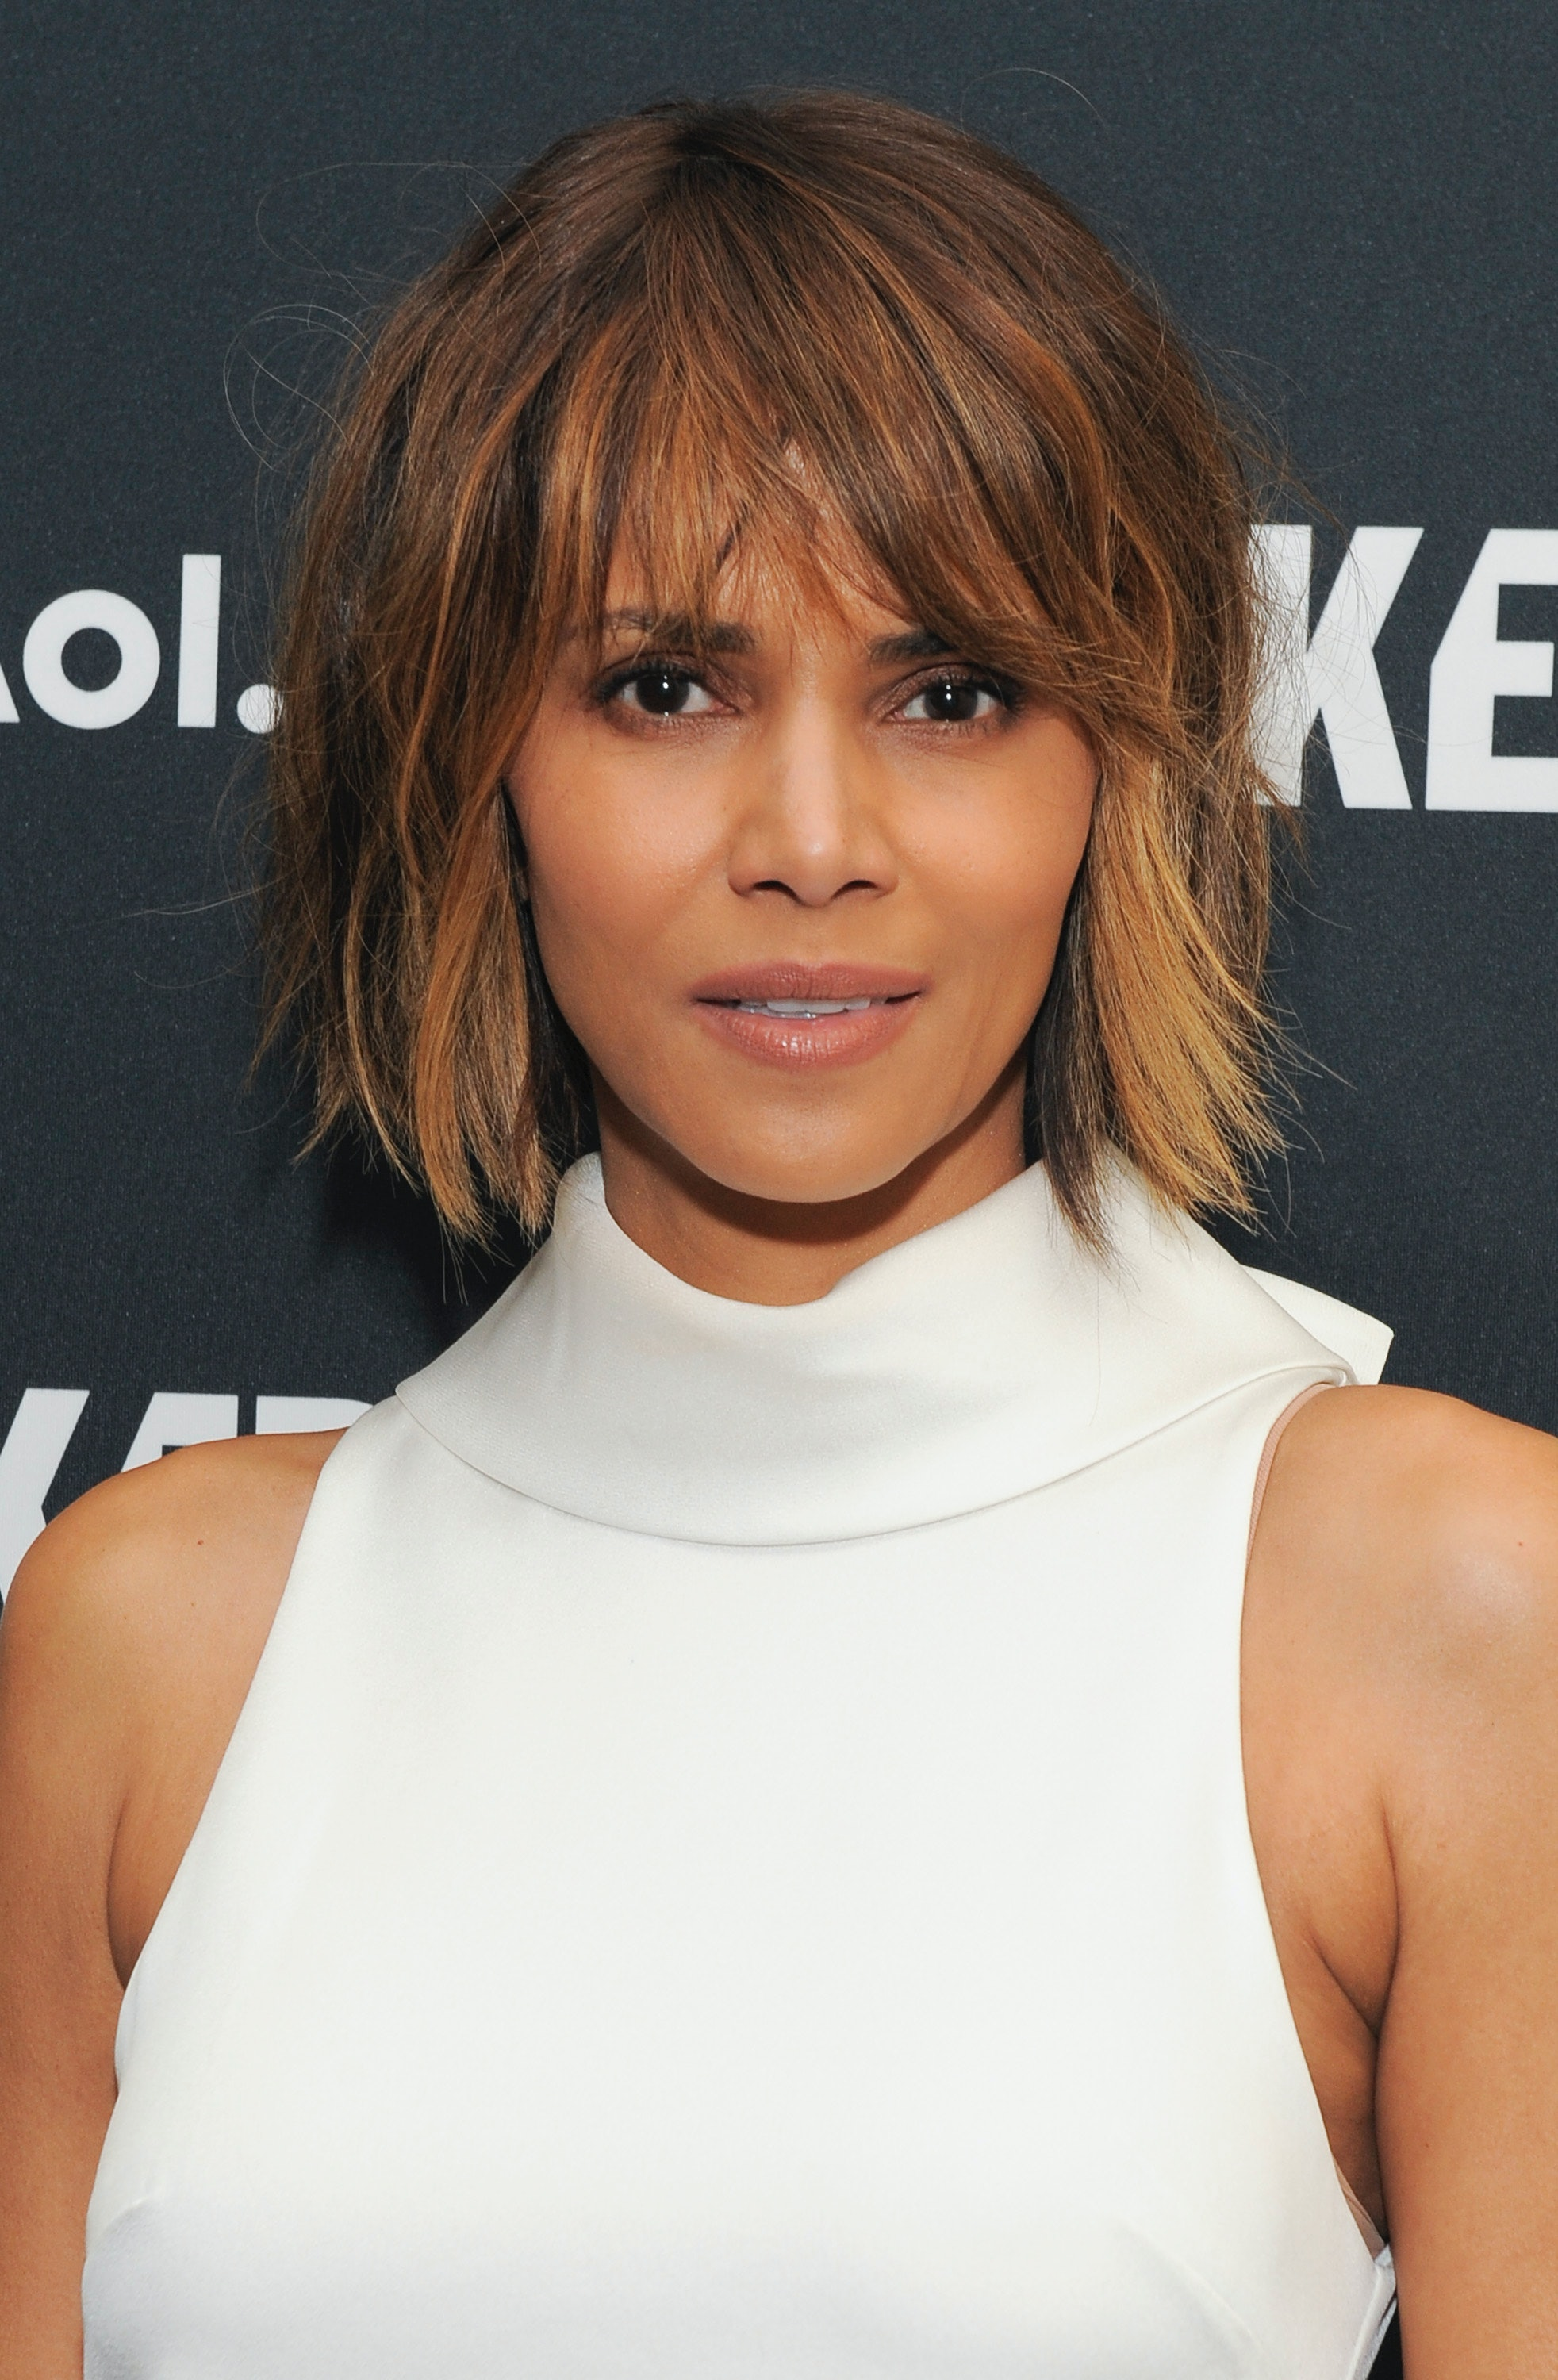 Halle Berrys New Haircut Is Her Coolest Look Since That Pixie Do